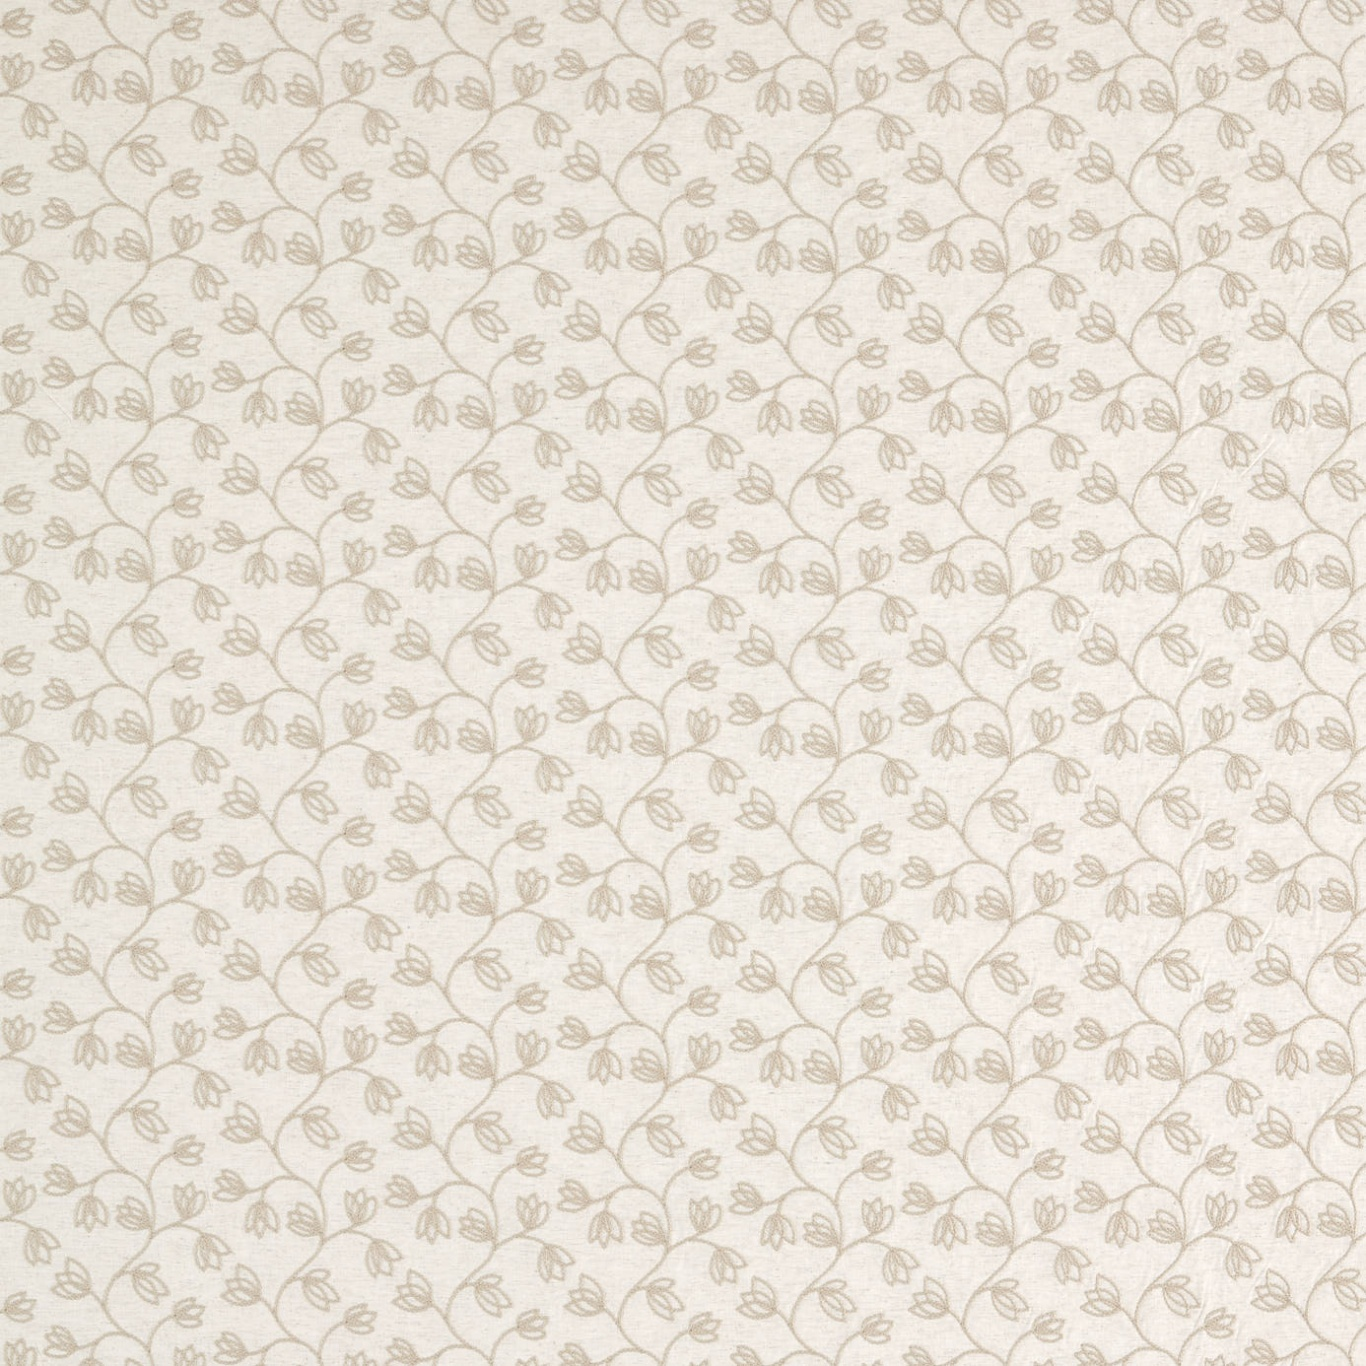 Image of Sanderson Ingleton Trail Linen Fabric 236274